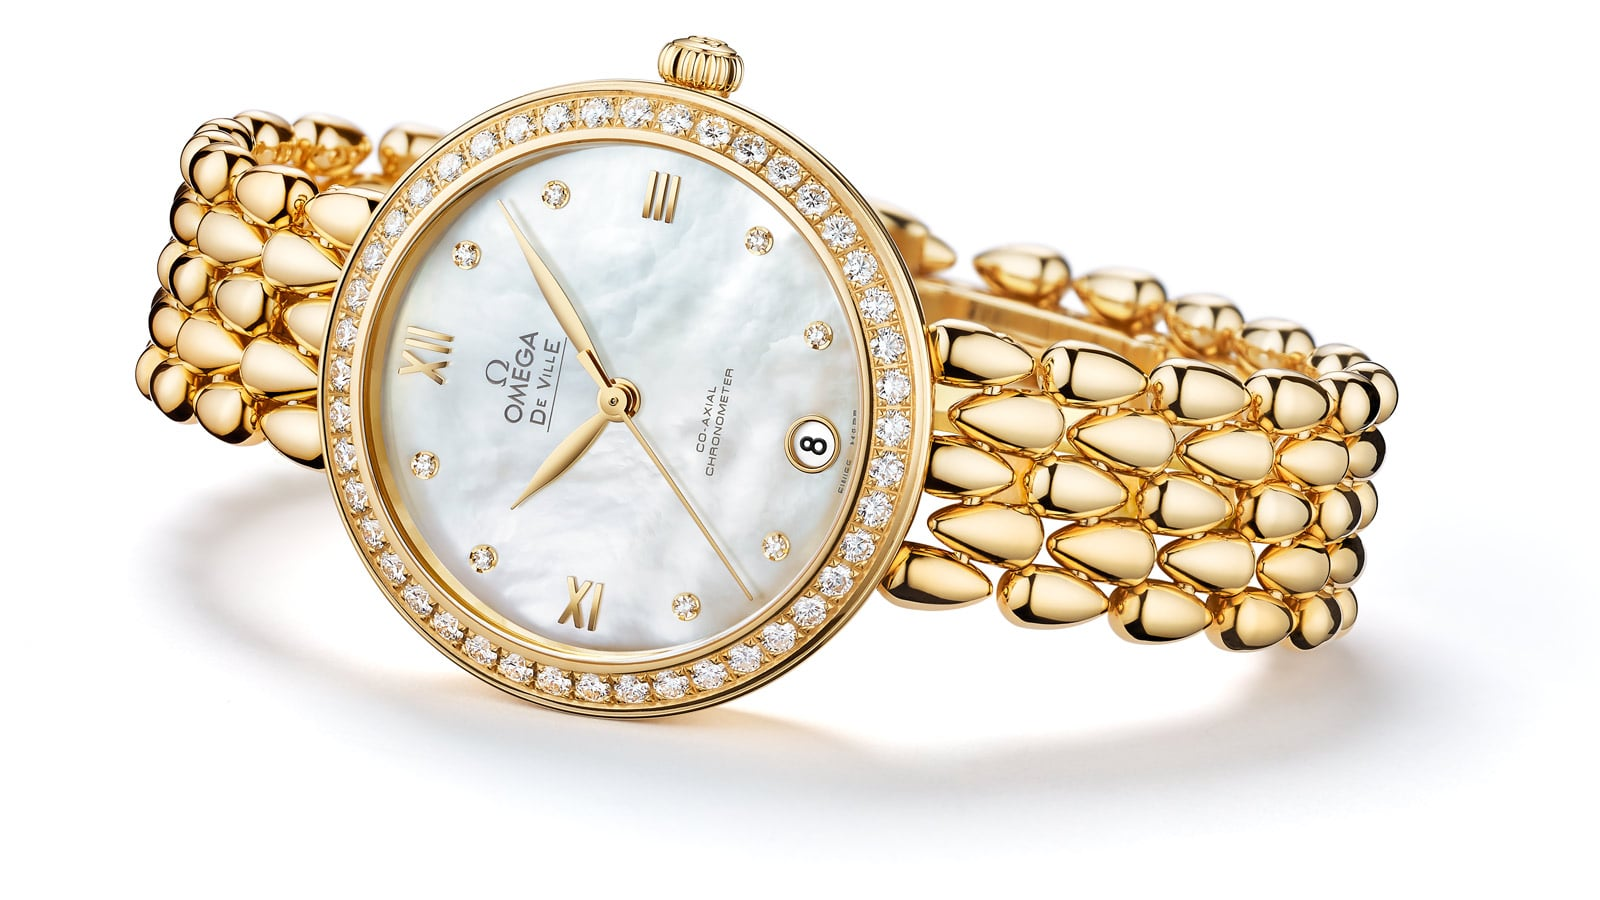 Gold watch with a diamond encrusted case and mother-of-pearl dial from the Prestige Dewdrop collection